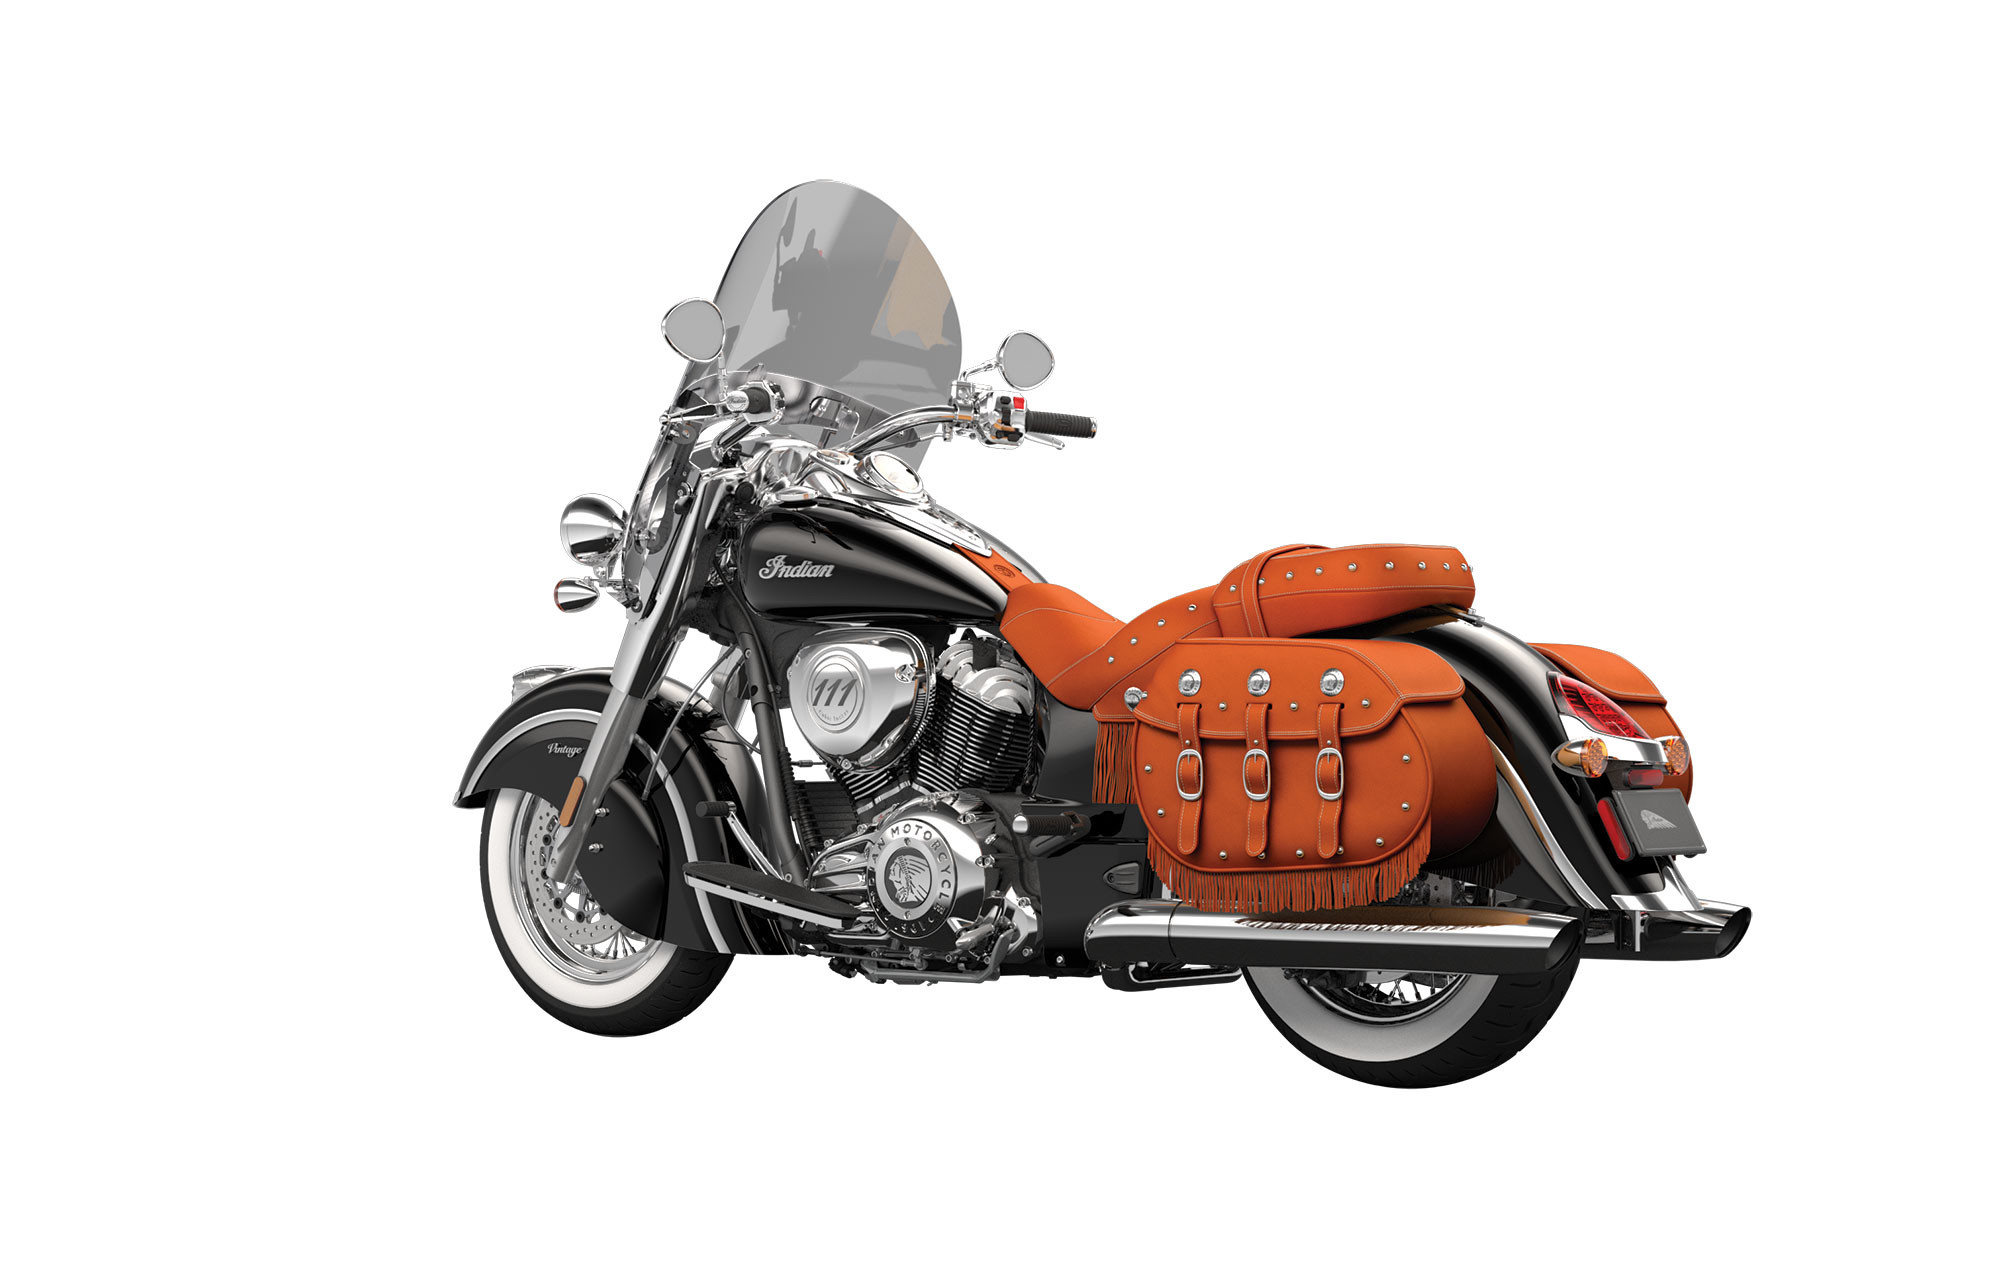 Res: 2014x1269, 2014 Indian Chief Vintage motorbike f wallpaper |  | 127473 |  WallpaperUP